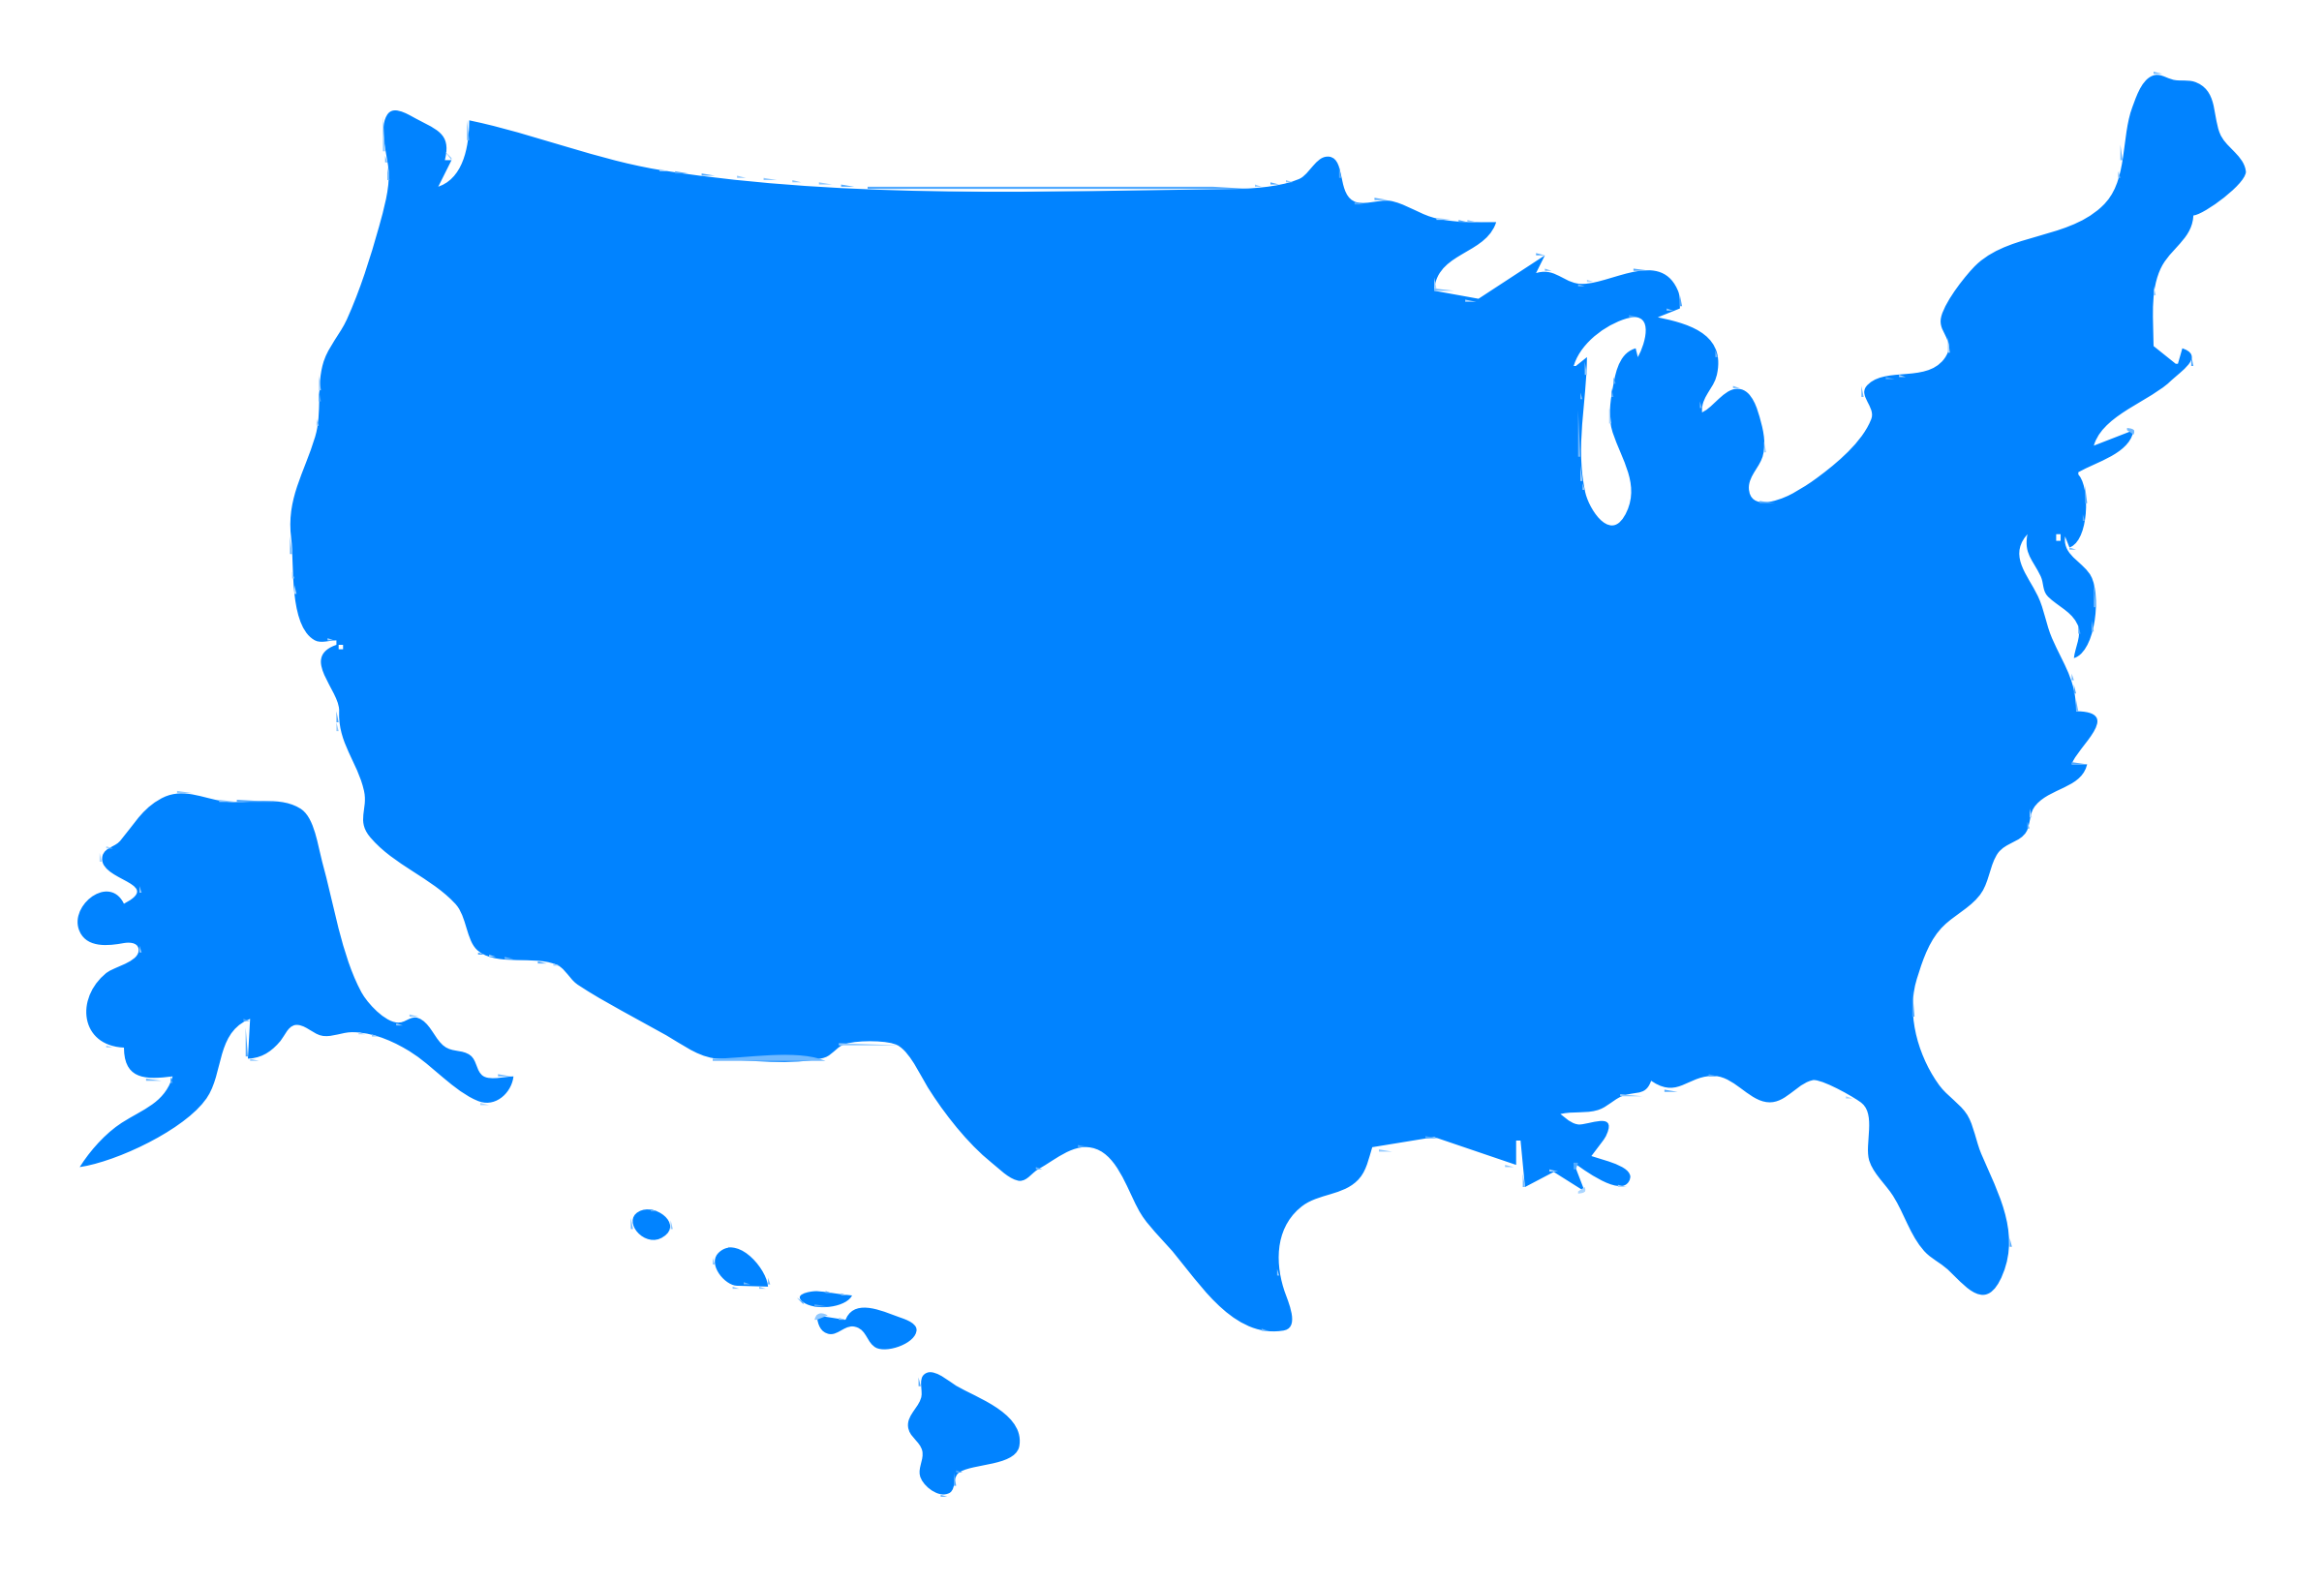 Free us map clipart clipart library download Usa map silhouetter clipart vector free - ClipartFest clipart library download